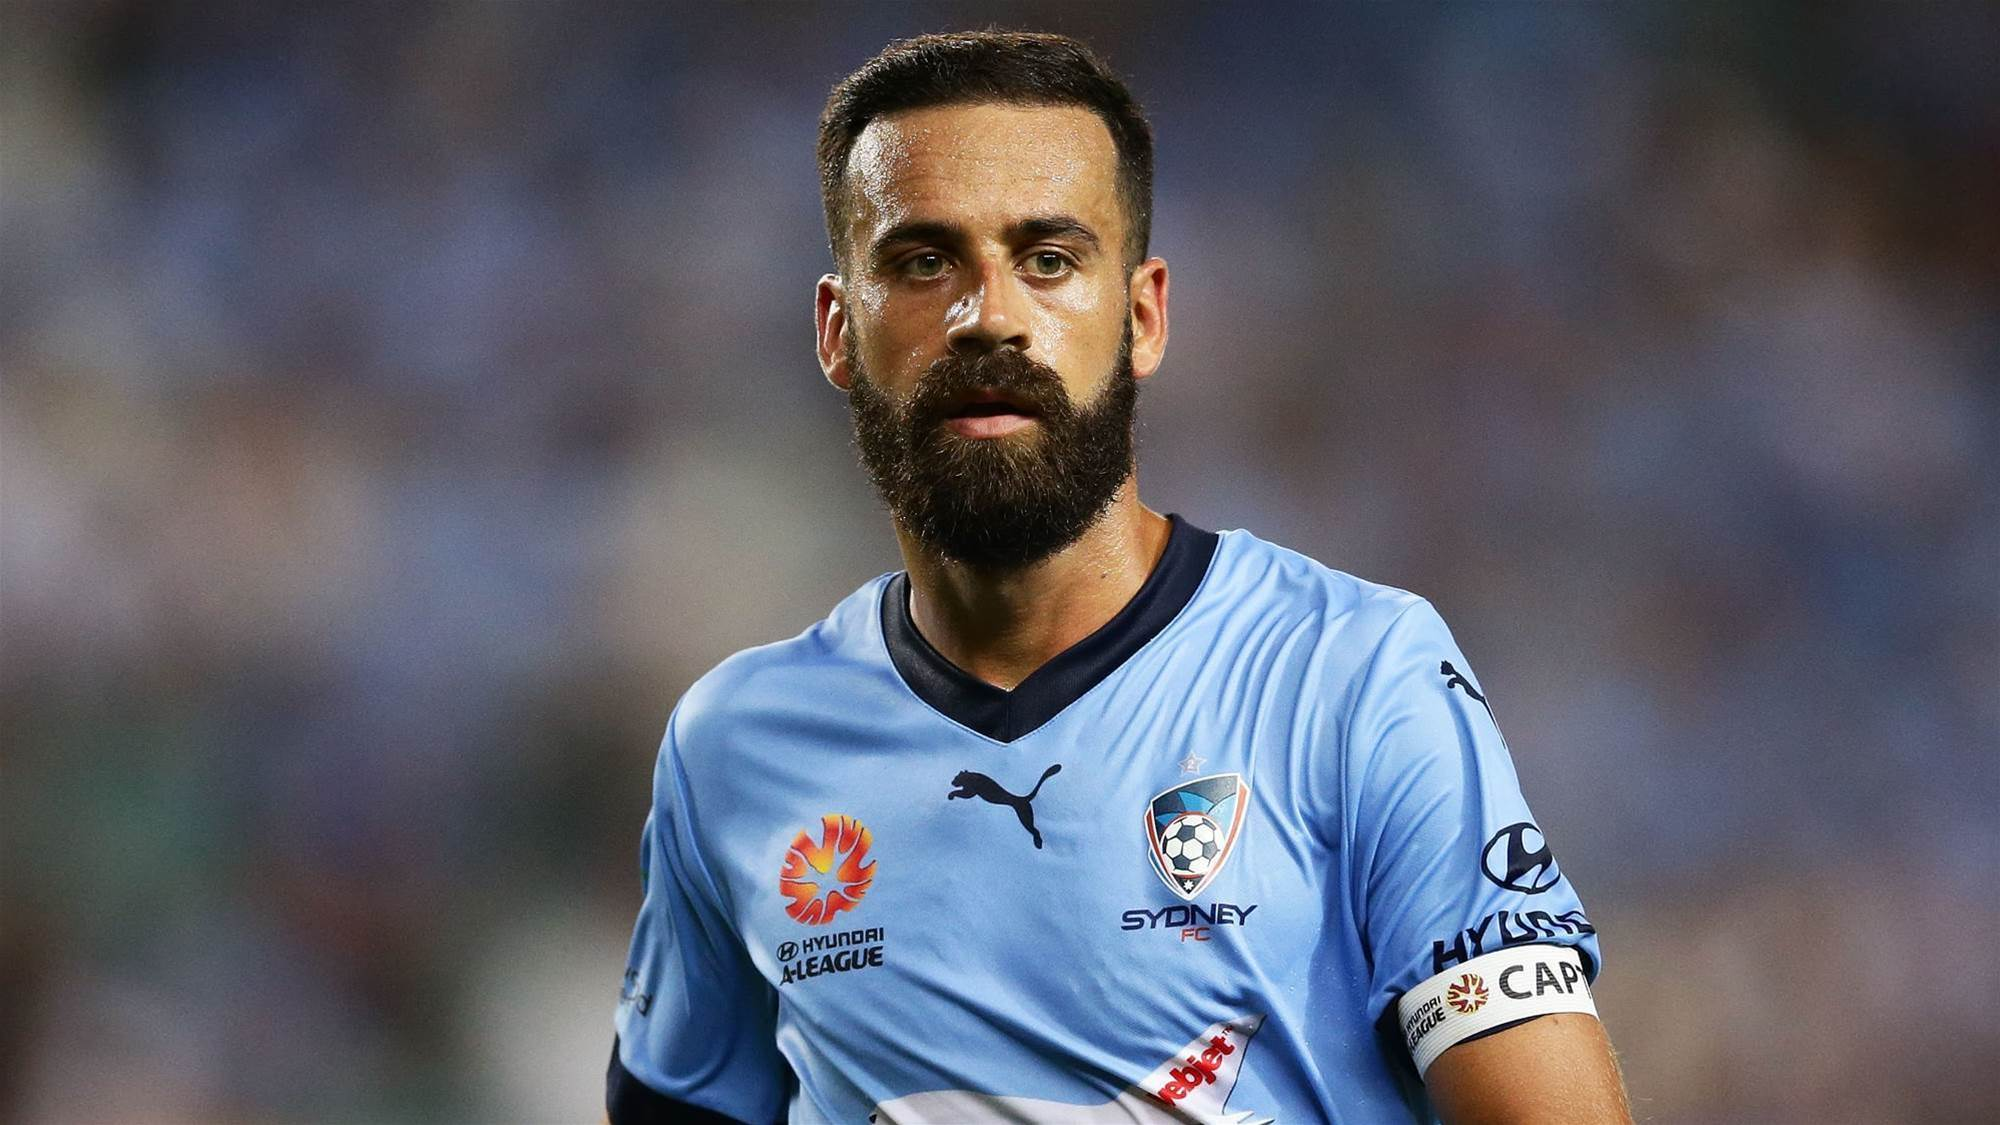 Brosque out for Sydney derby revenge